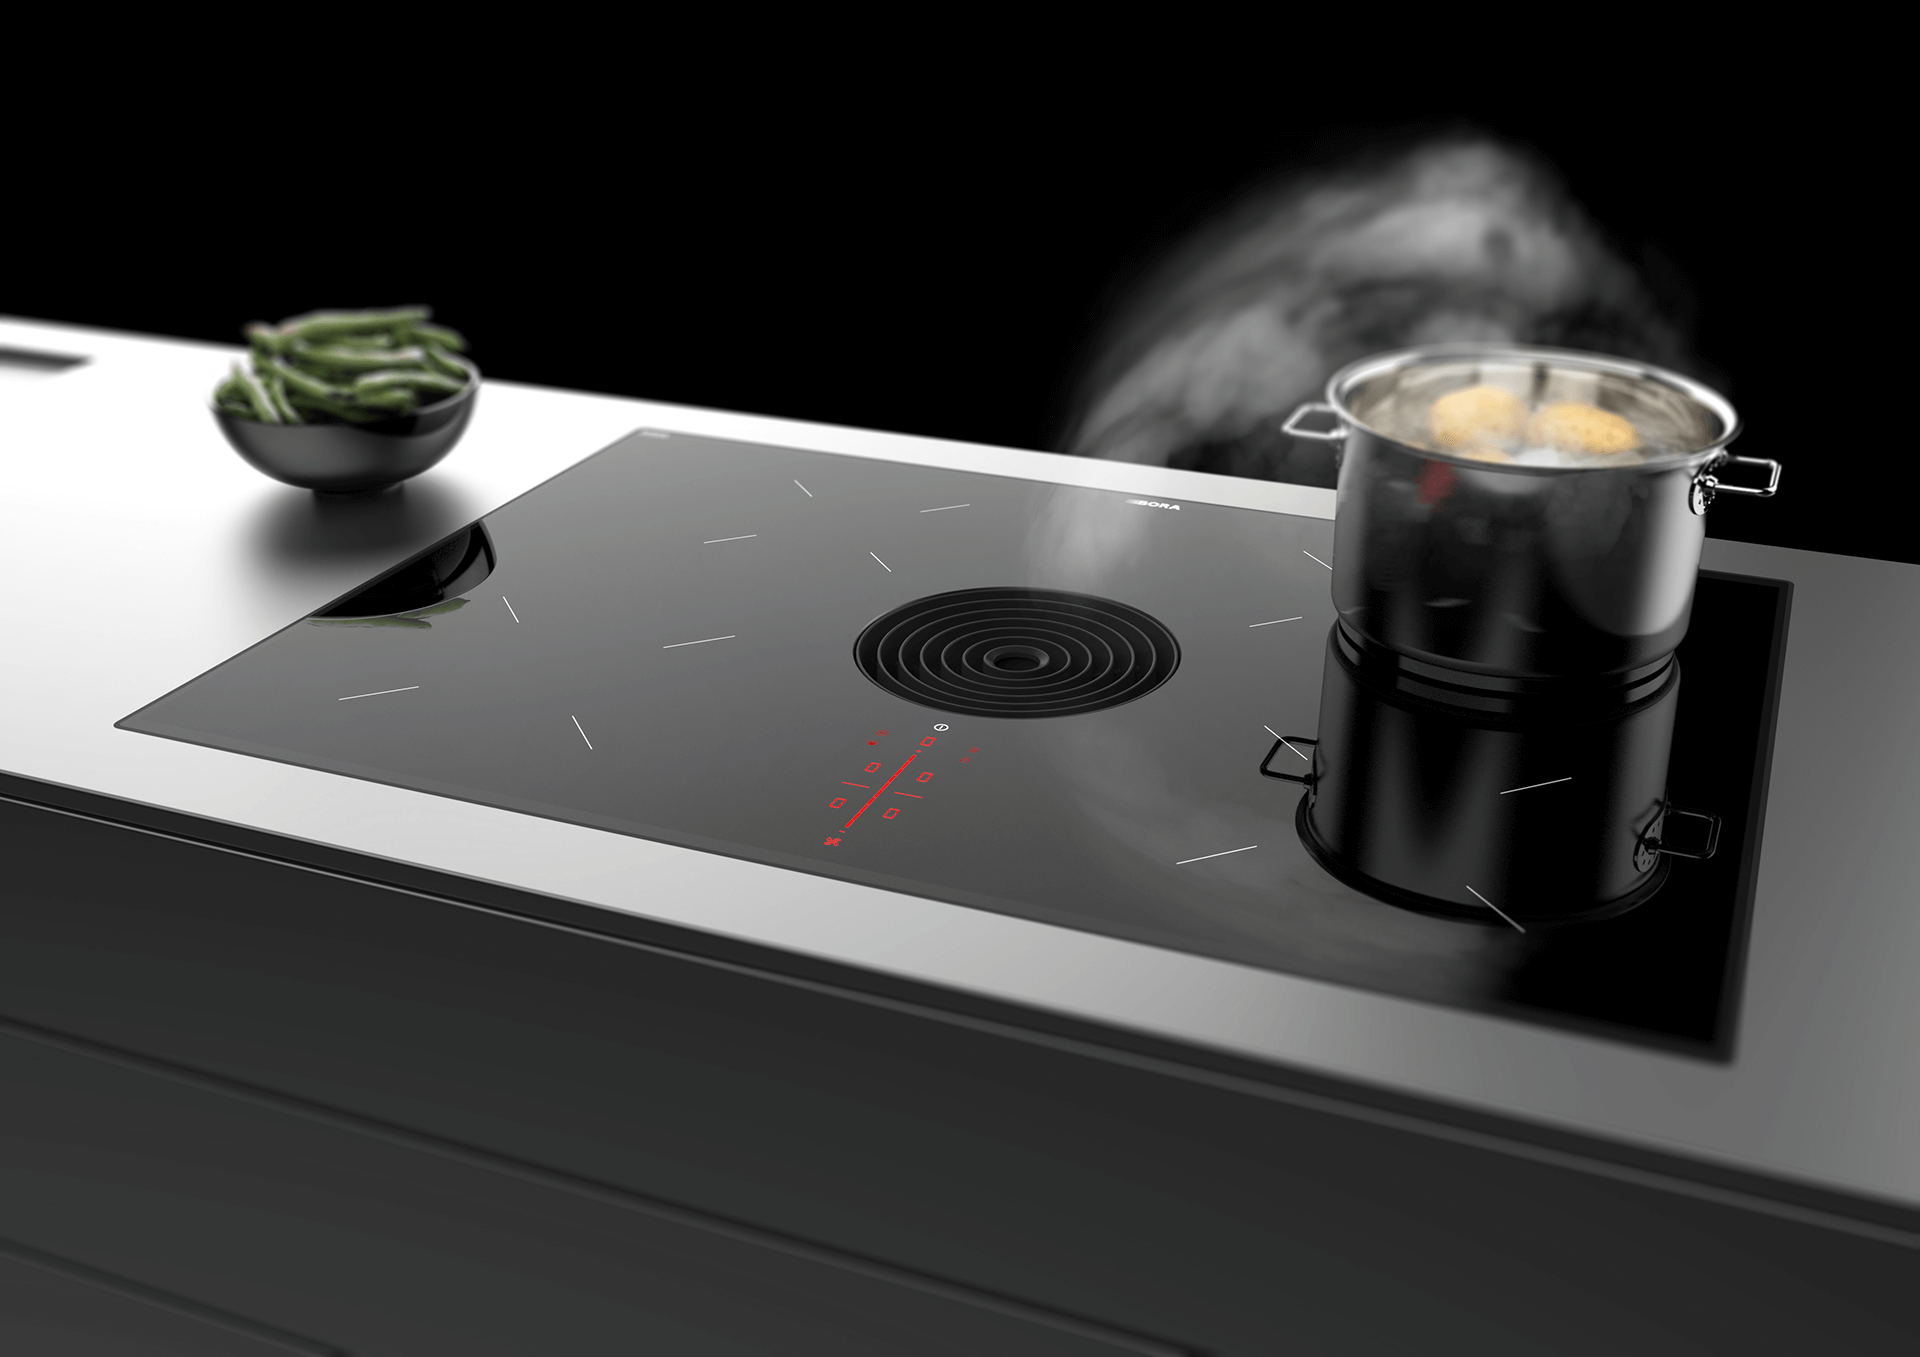 A BORA Pure with a black inlet nozzzle, which absorbs the steam from a boiling pan.